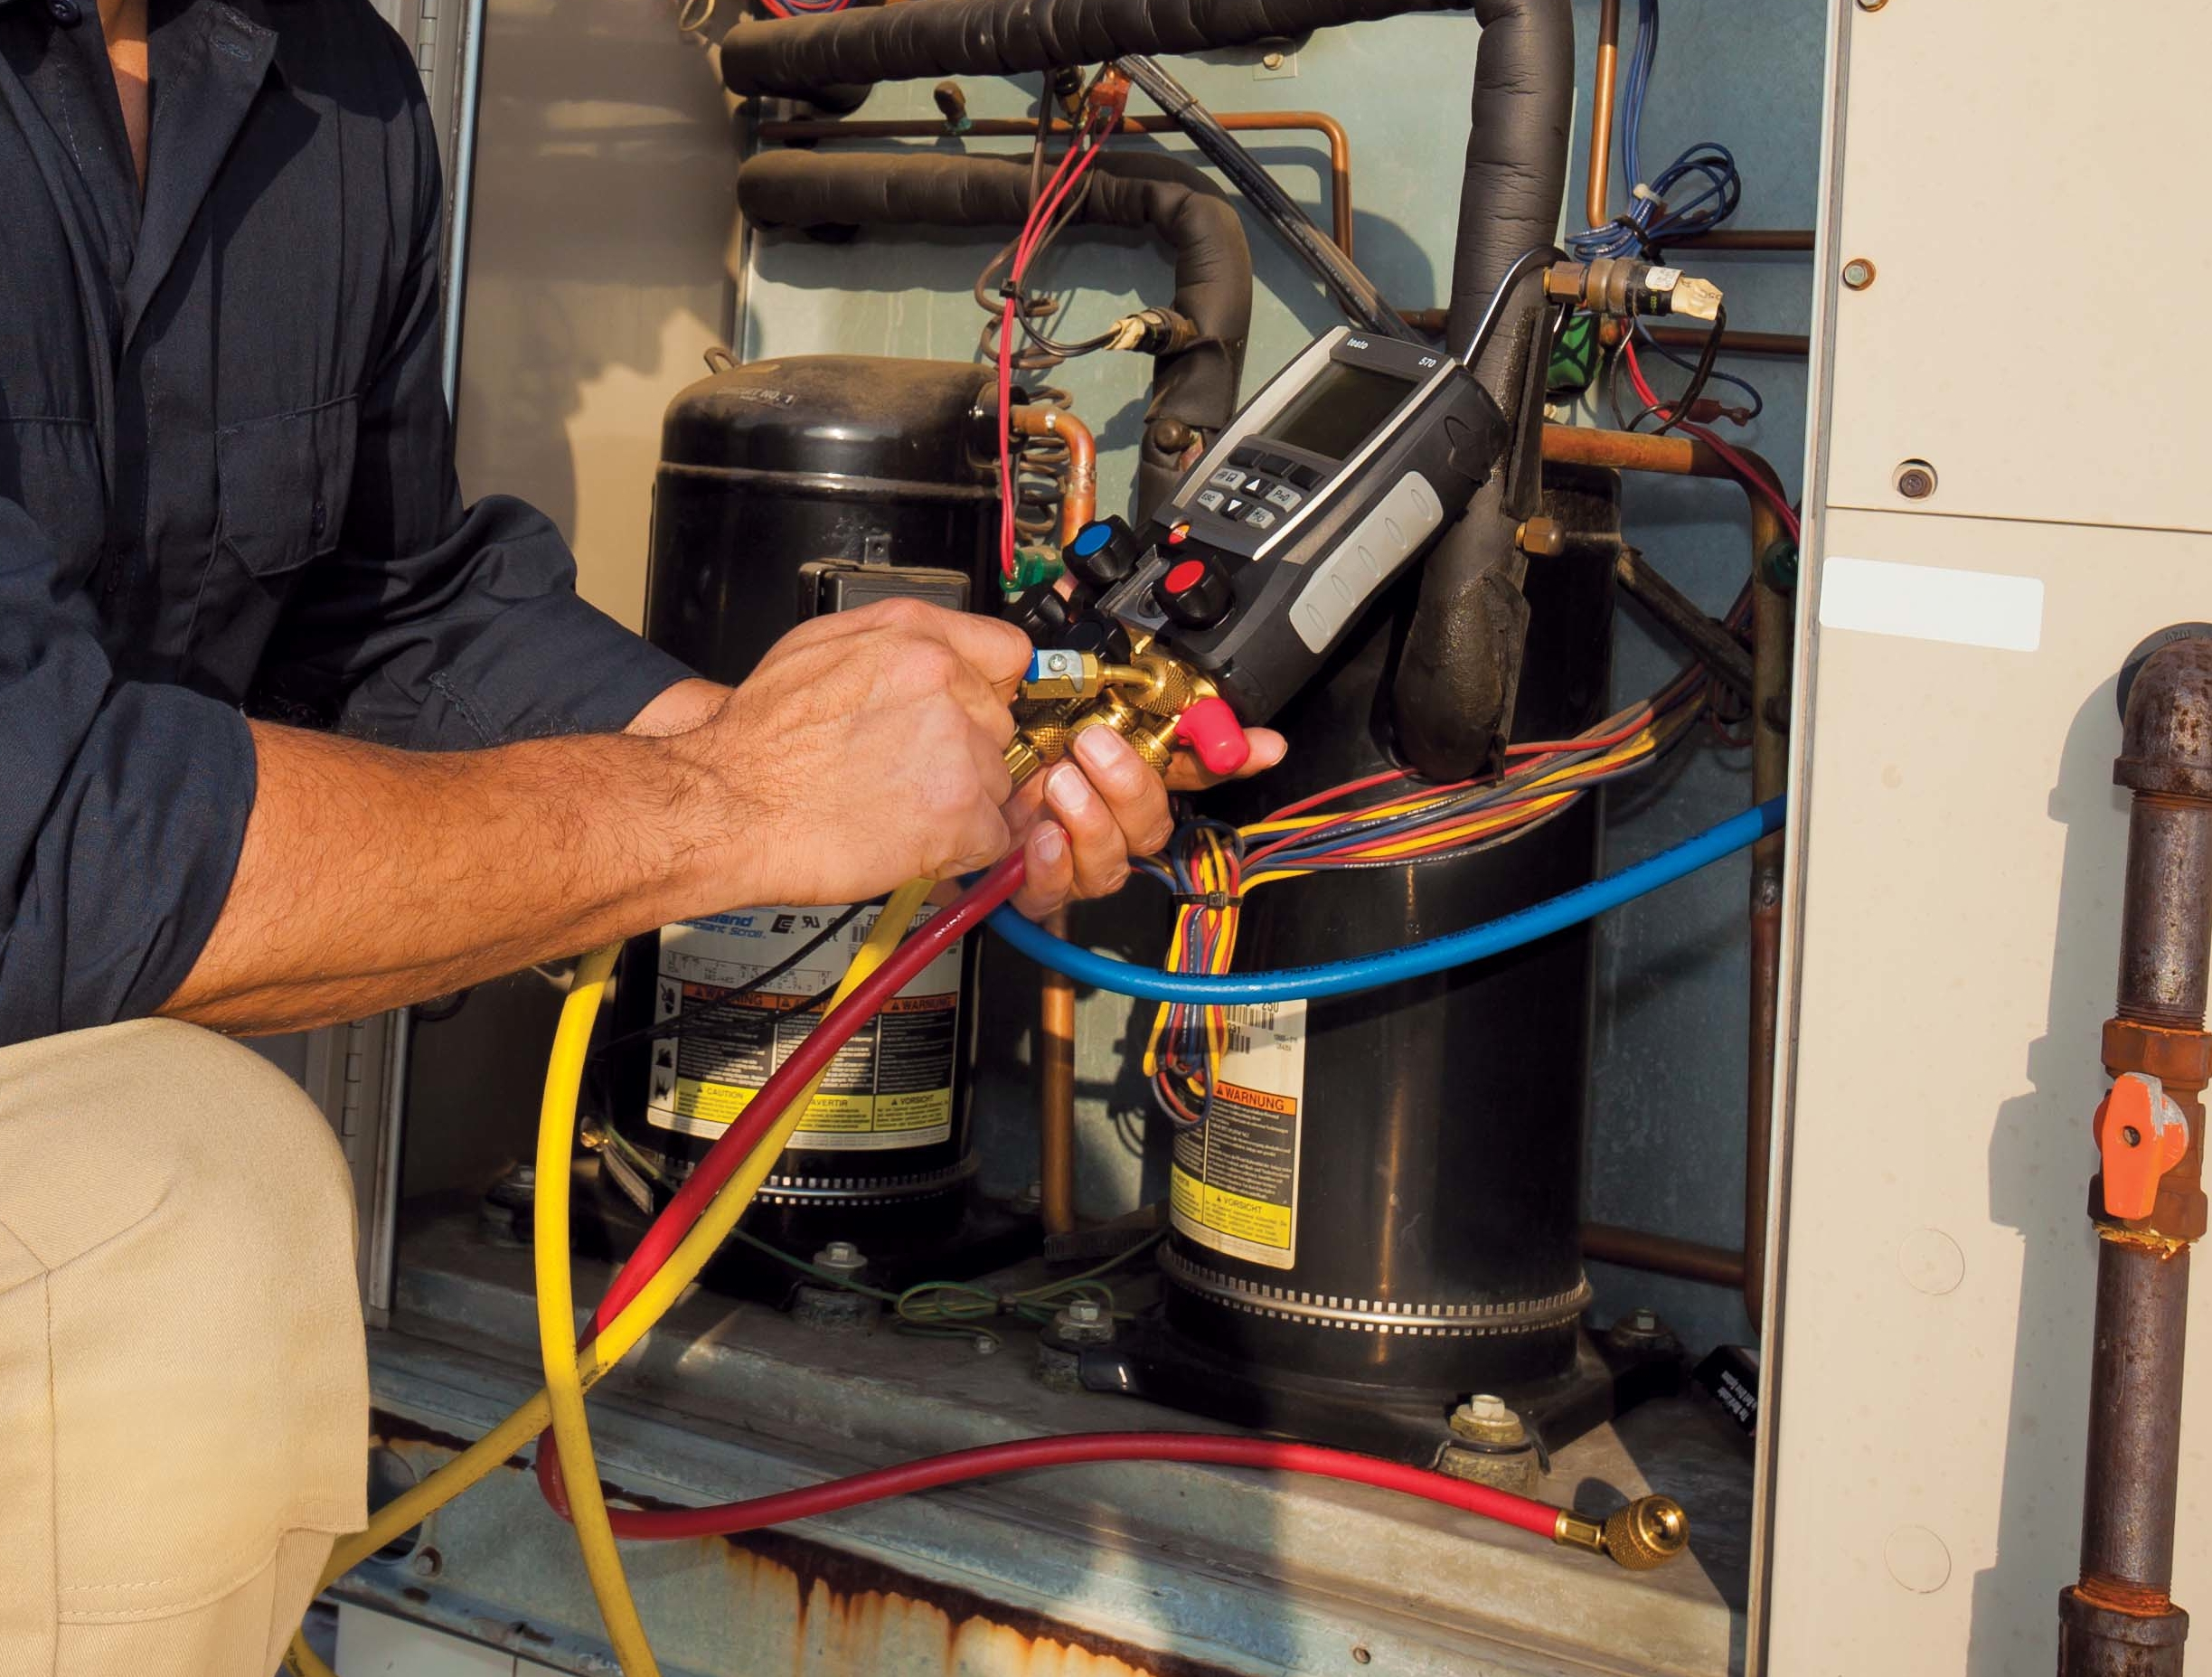 How to troubleshoot HVAC systems